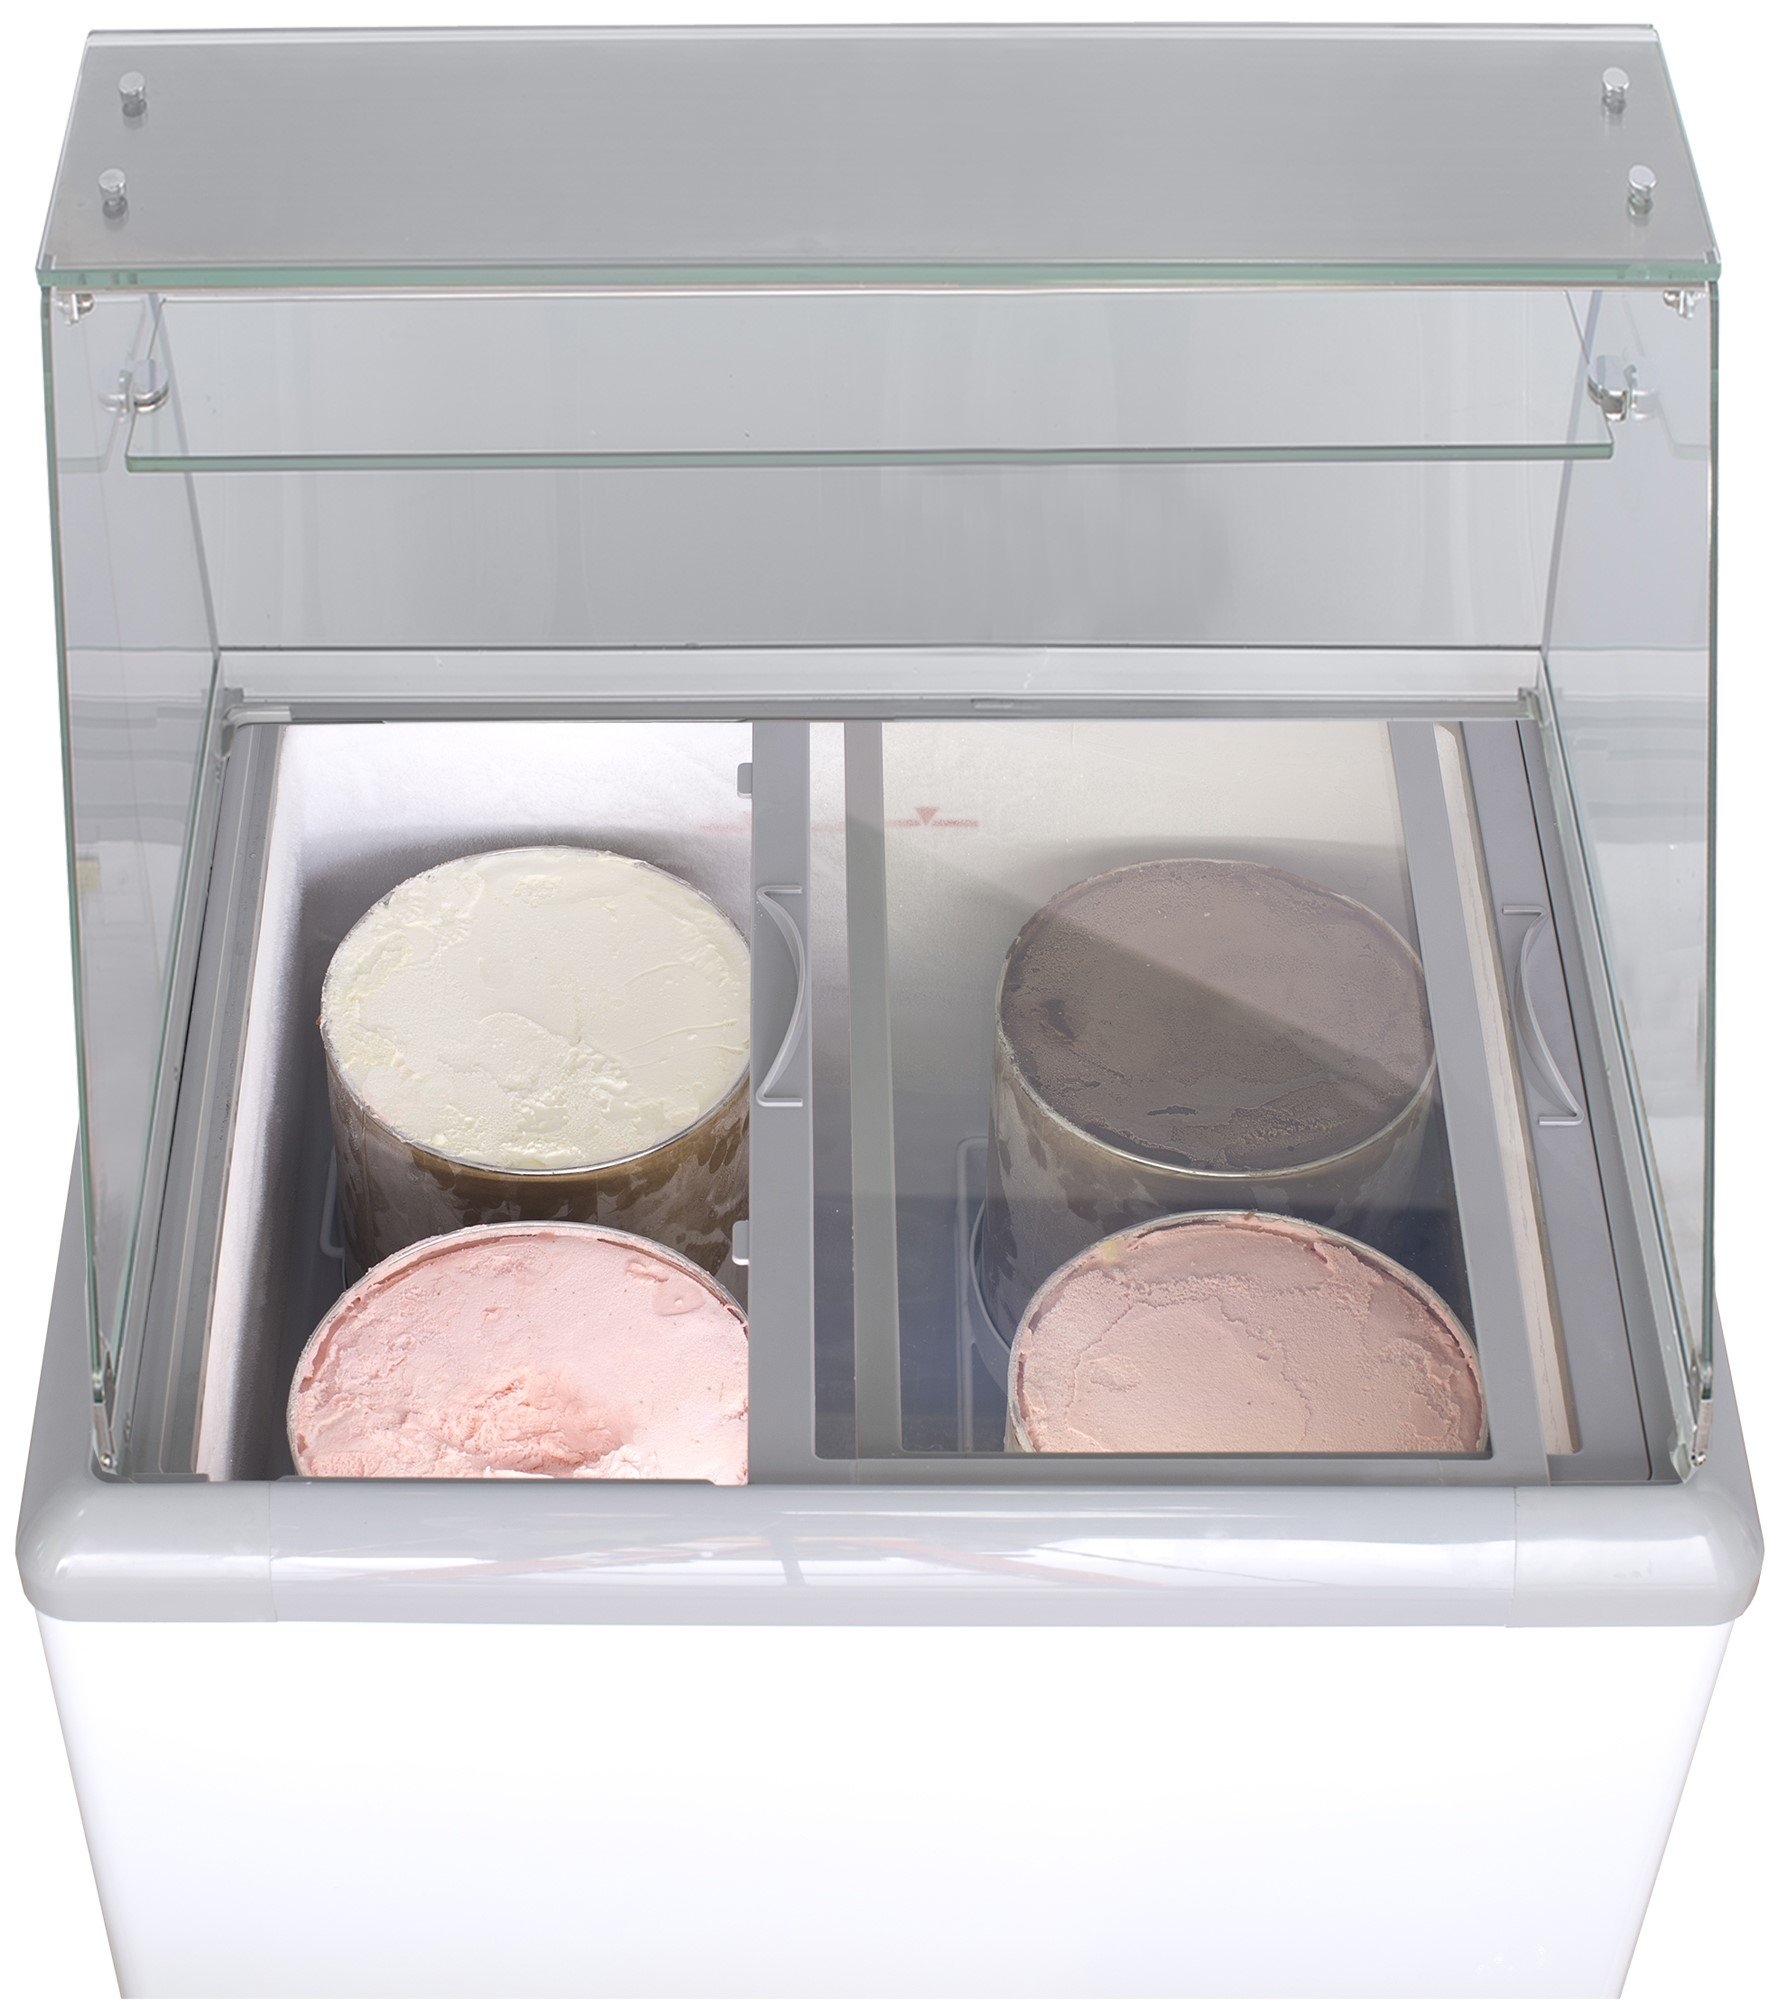 Chef's Exclusive Commercial Frost Free Ice Cream Dipping Cabinet Case Sub Zero Freezer Glass Canopy 7.5 Cubic Feet With…